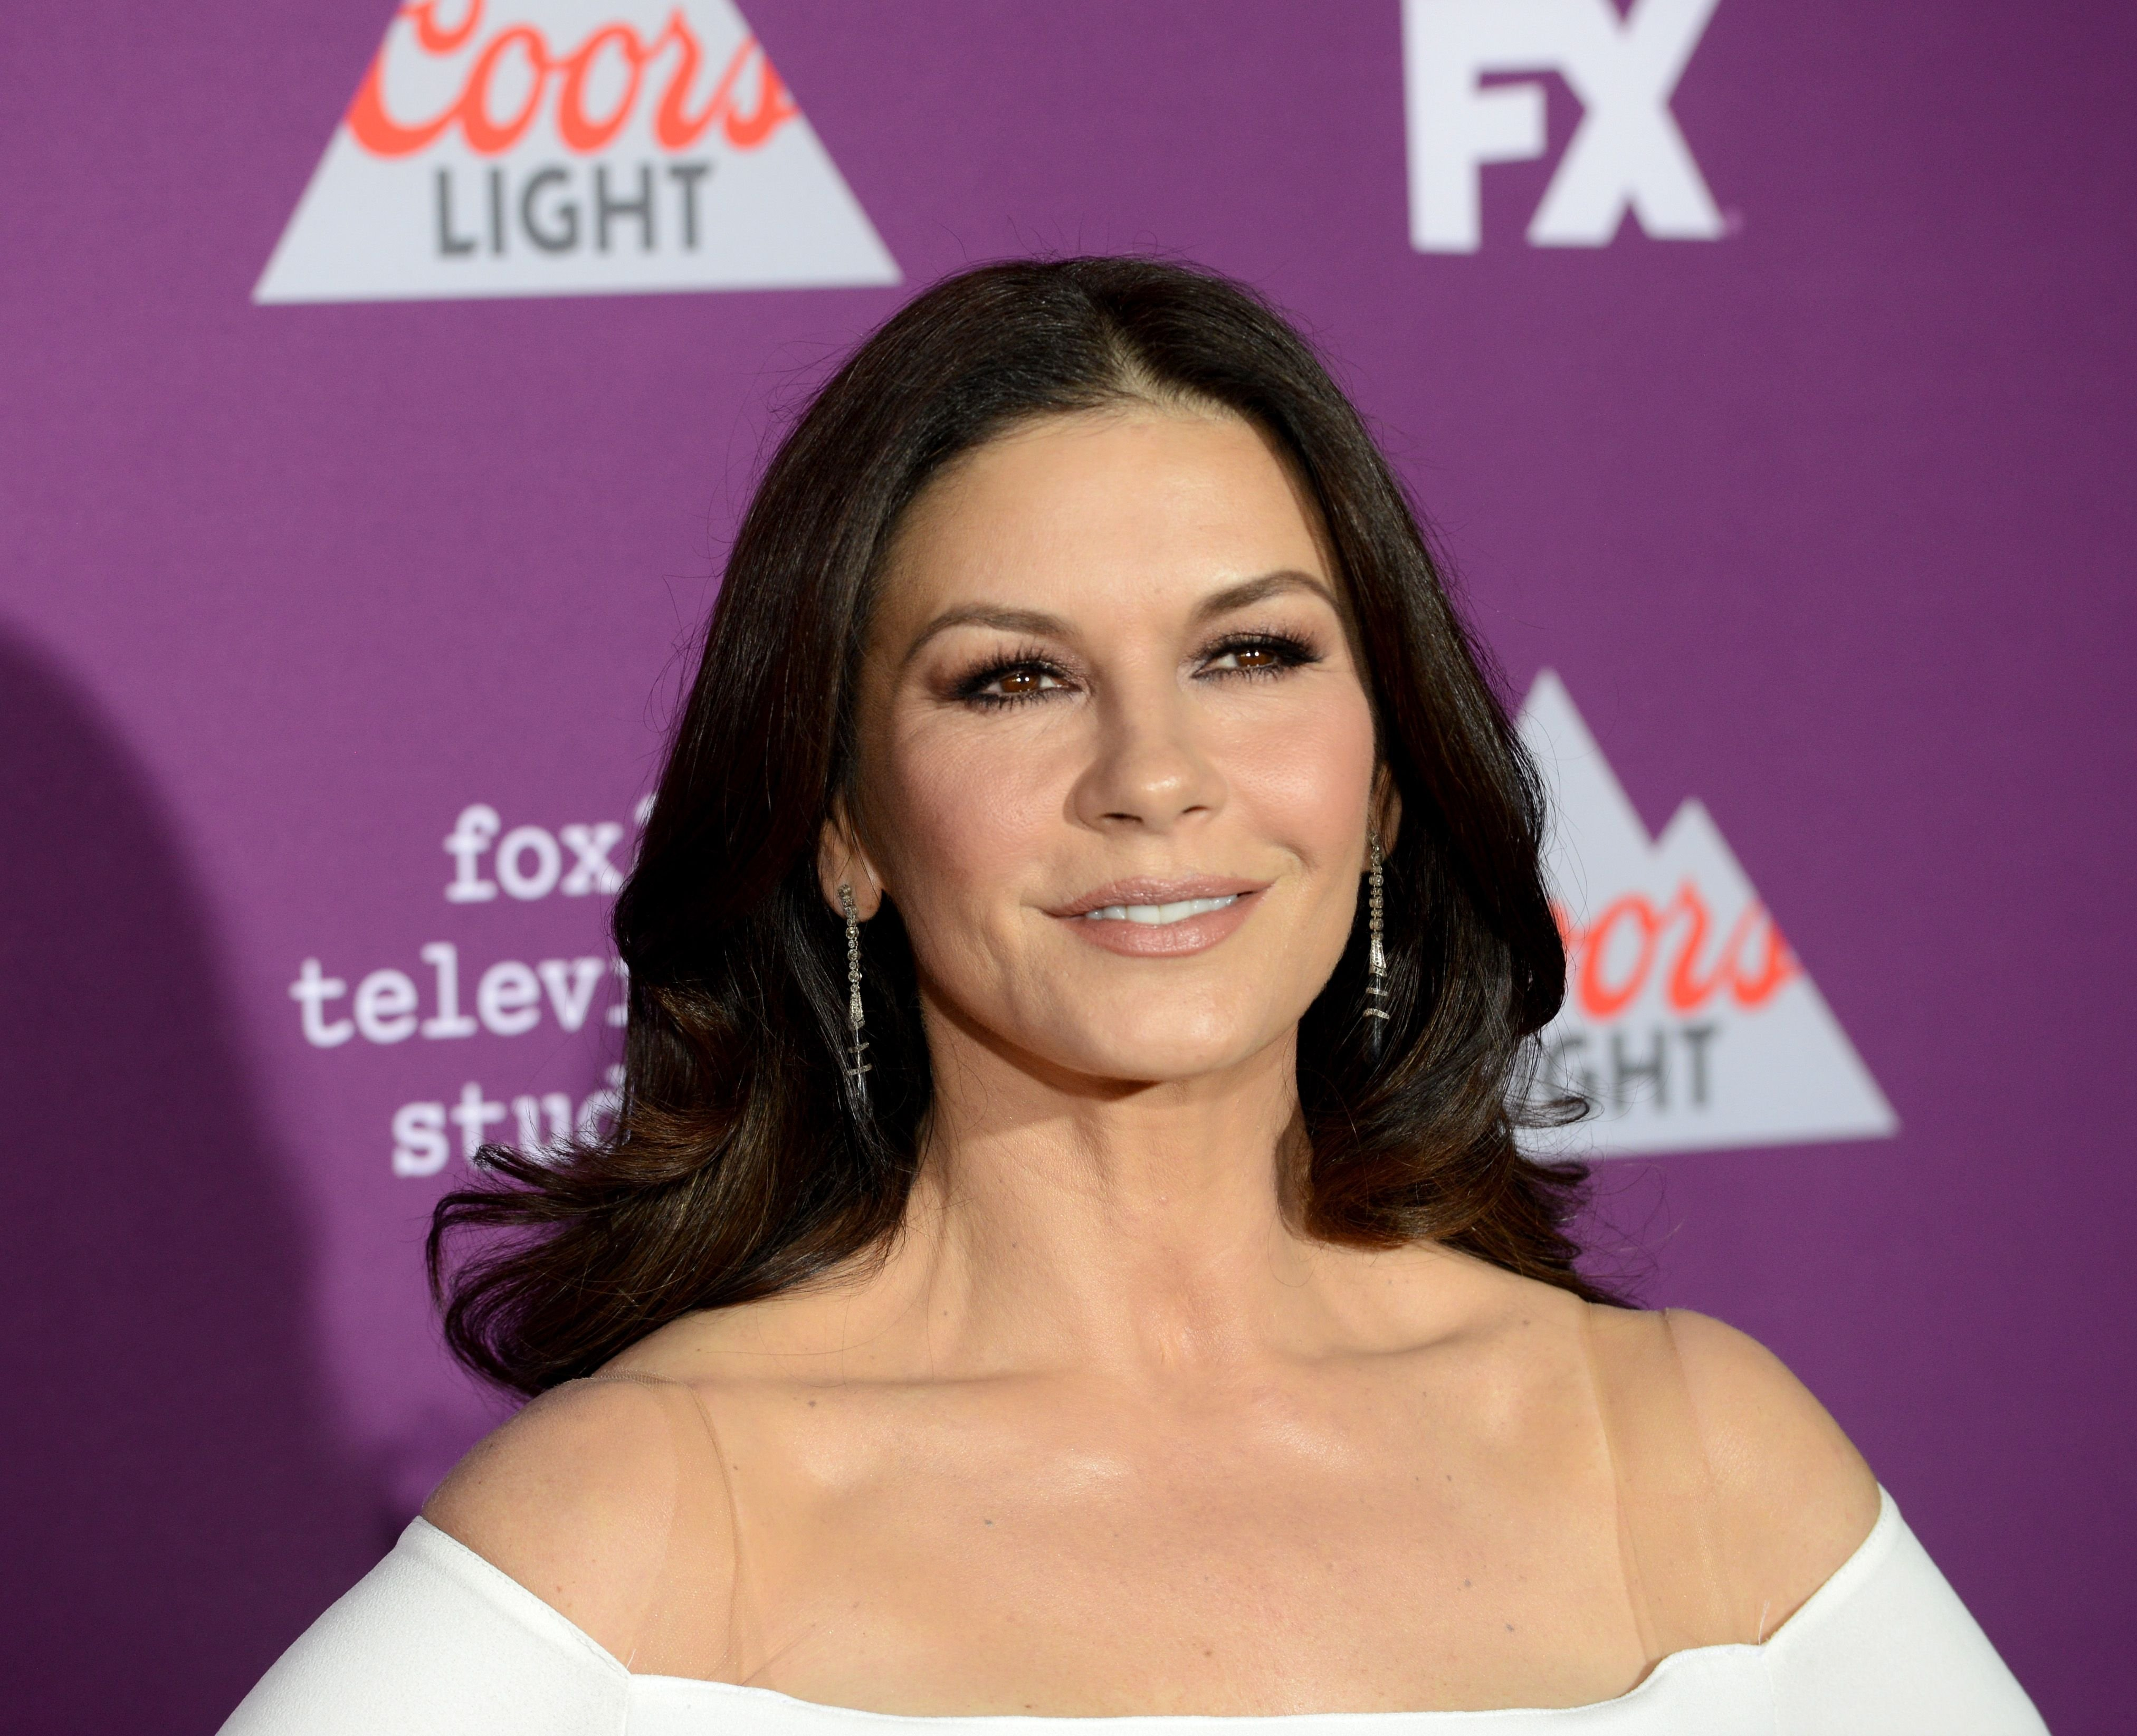 """Catherine Zeta Jones at the Premiere Of FX Network's """"Feud: Bette And Joan"""" held at Grauman's Chinese Theatre on March 1, 2017 in Hollywood, California 